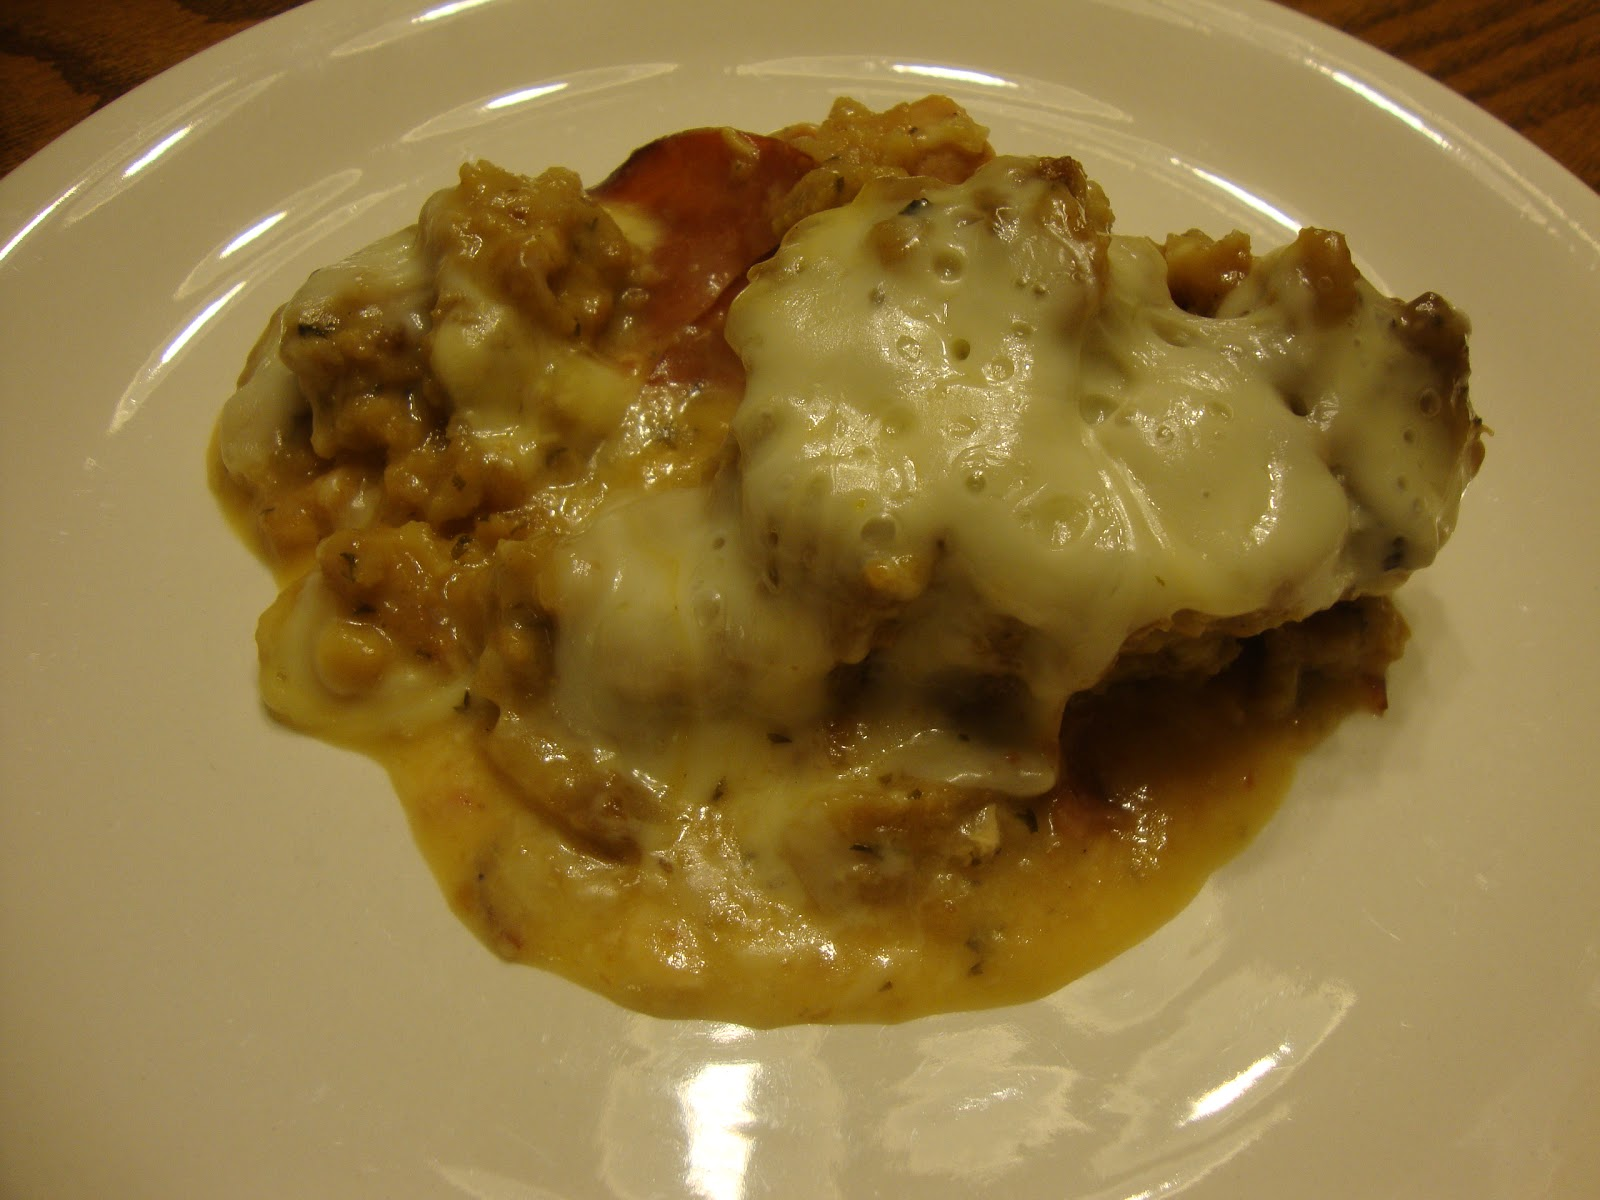 Busy Mom's Slow Cooker Adventures: Chicken Cordon Bleu Casserole